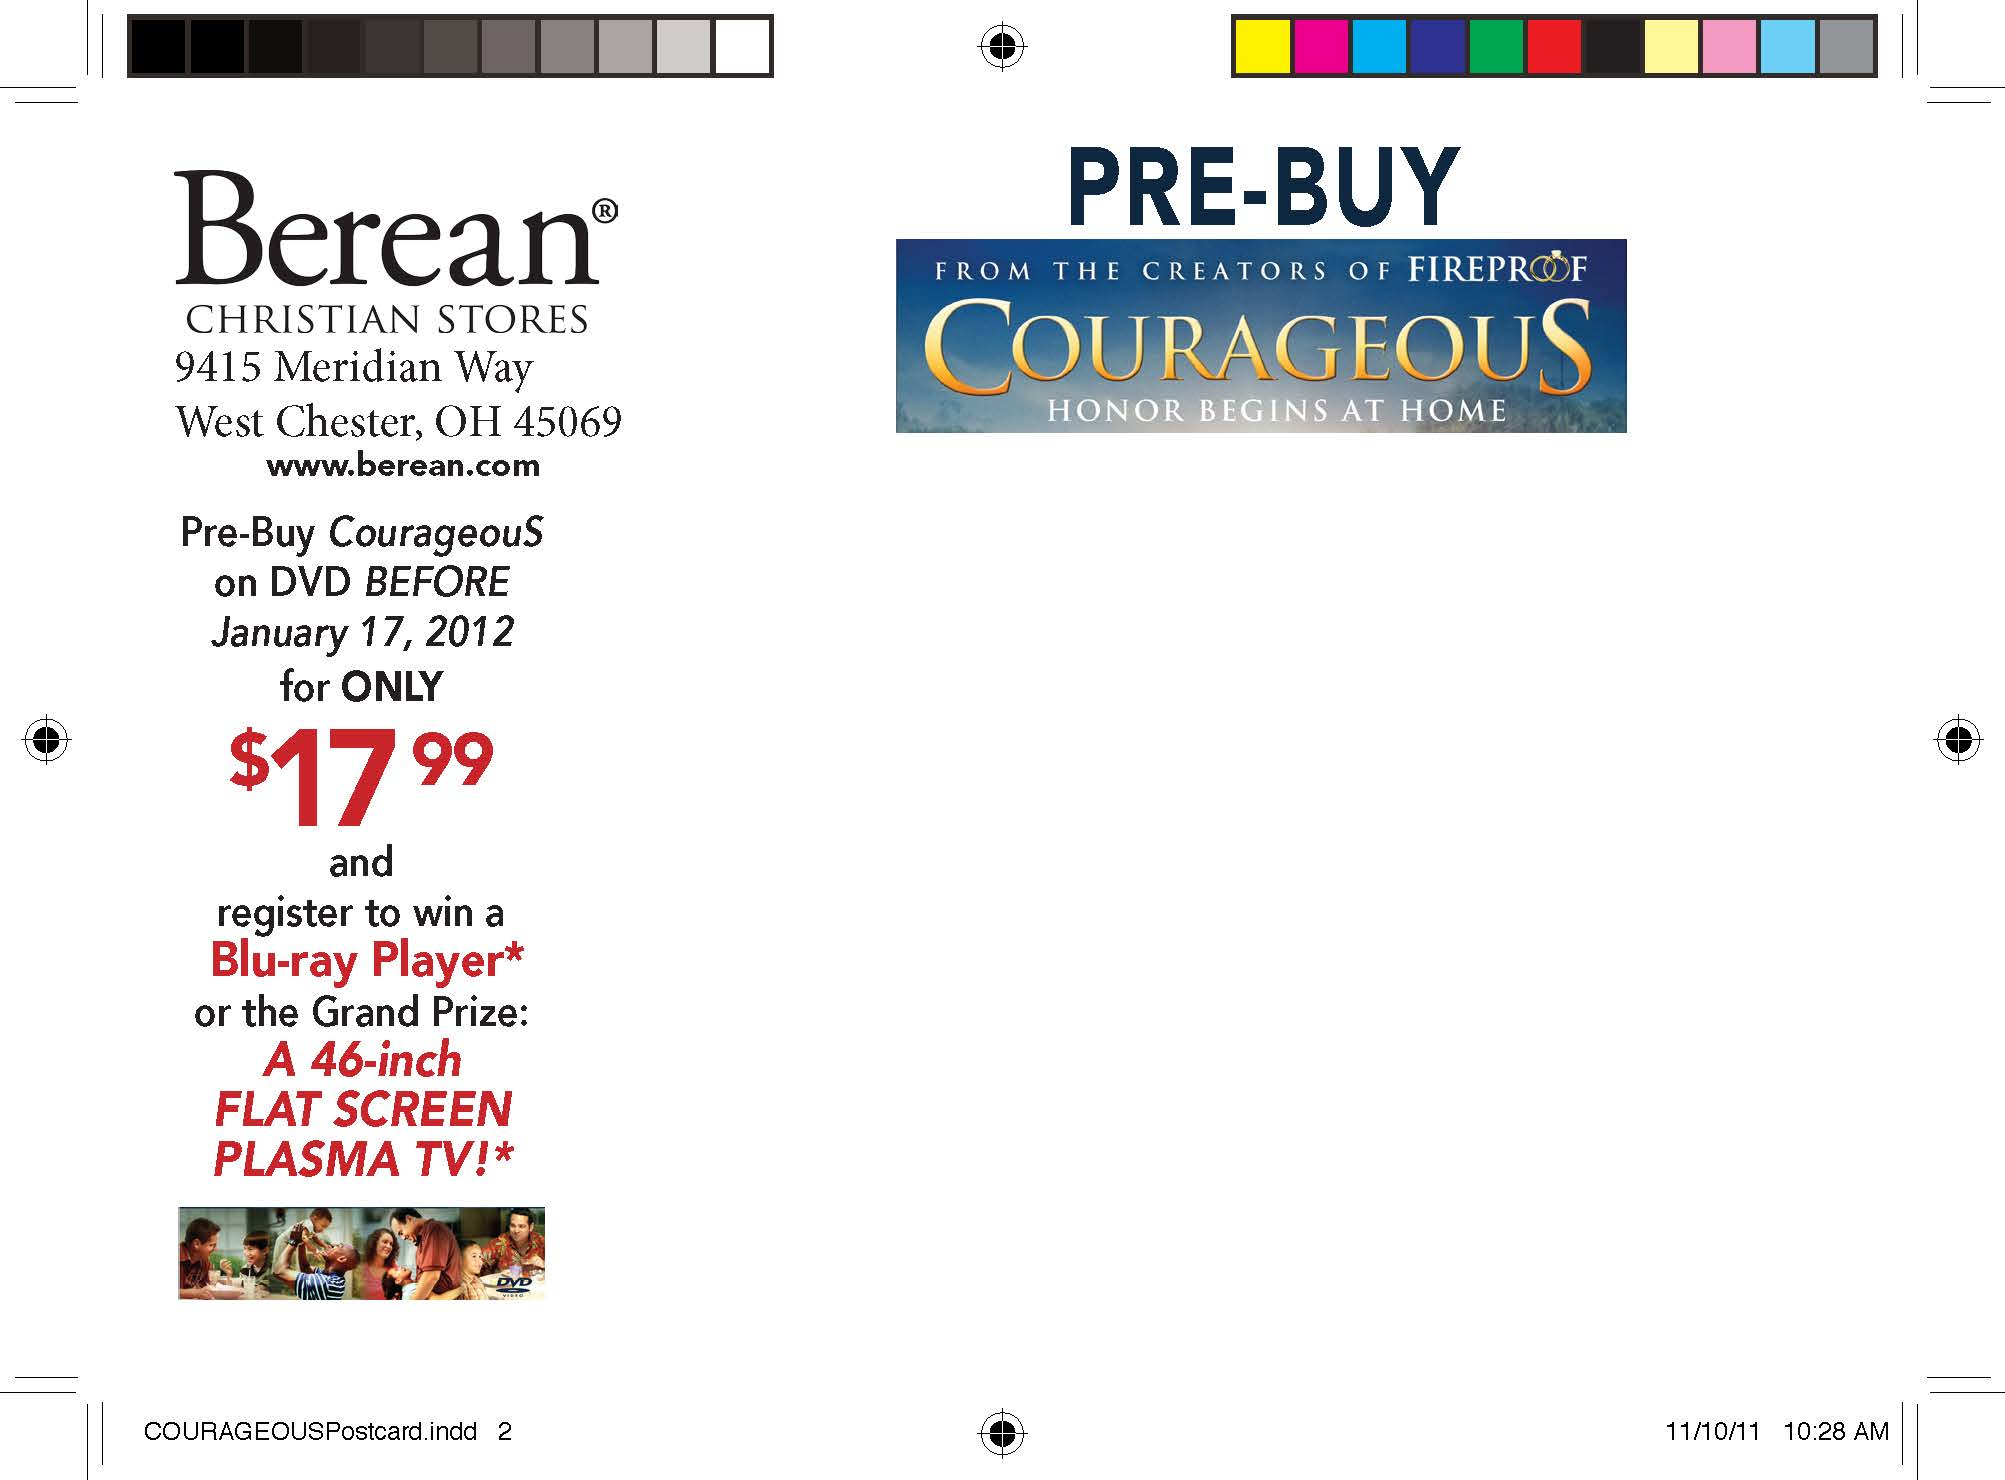 COURAGEOUSPostcard_Page_2.jpg